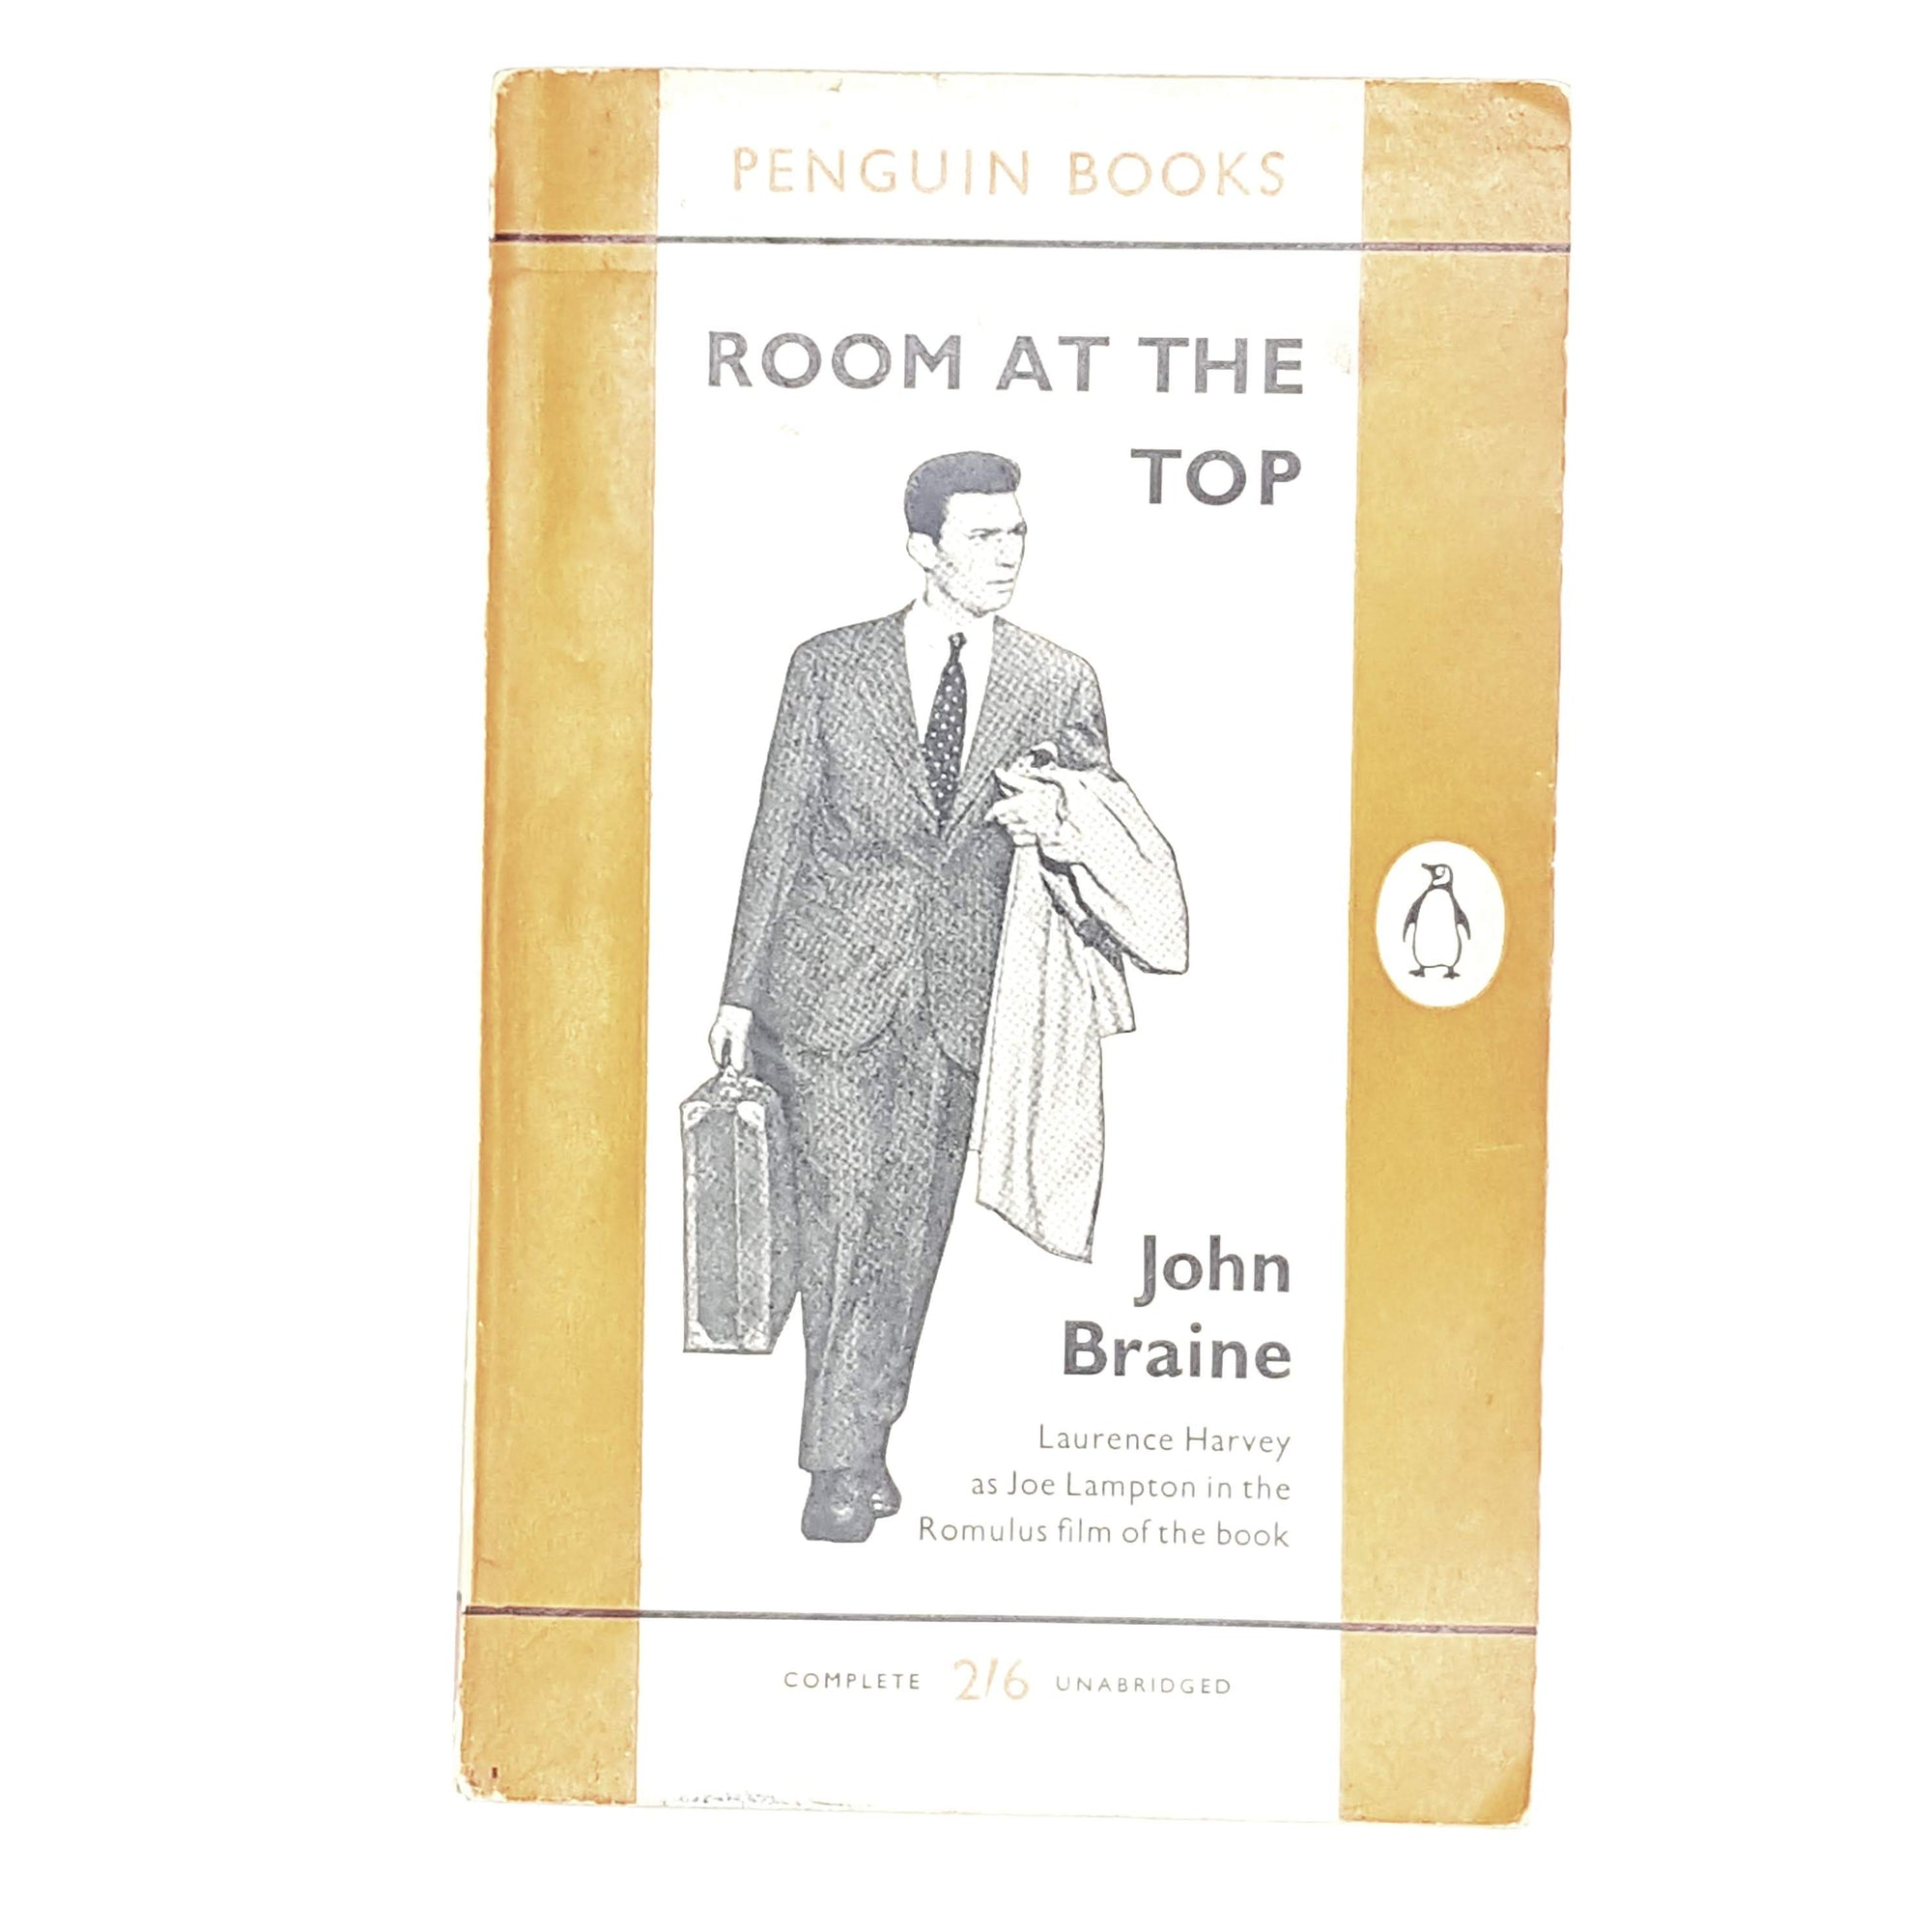 Room at the Top by John Braine 1959